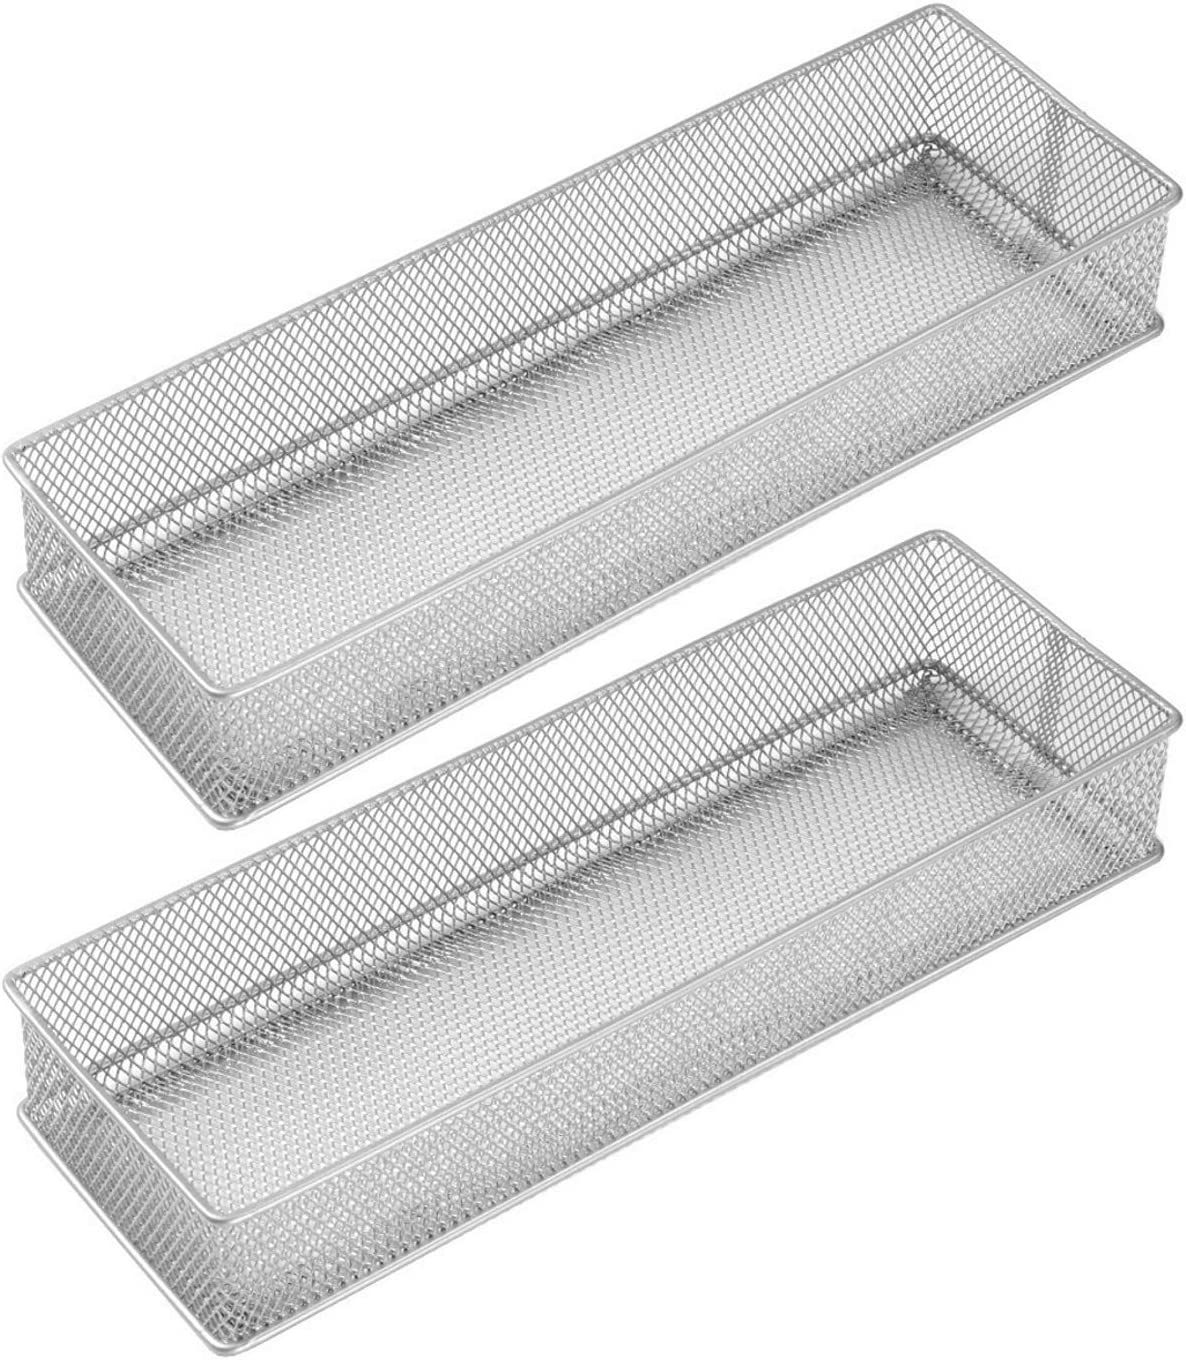 YBM HOME Silver Mesh Drawer Organizer and Storage for Kitchen Drawers, Serves as School Supply Holder, Office Desktop Organizer Basket, and Craft Supplies Organization, (2-Pack, 4x12x2 Inch) 1588